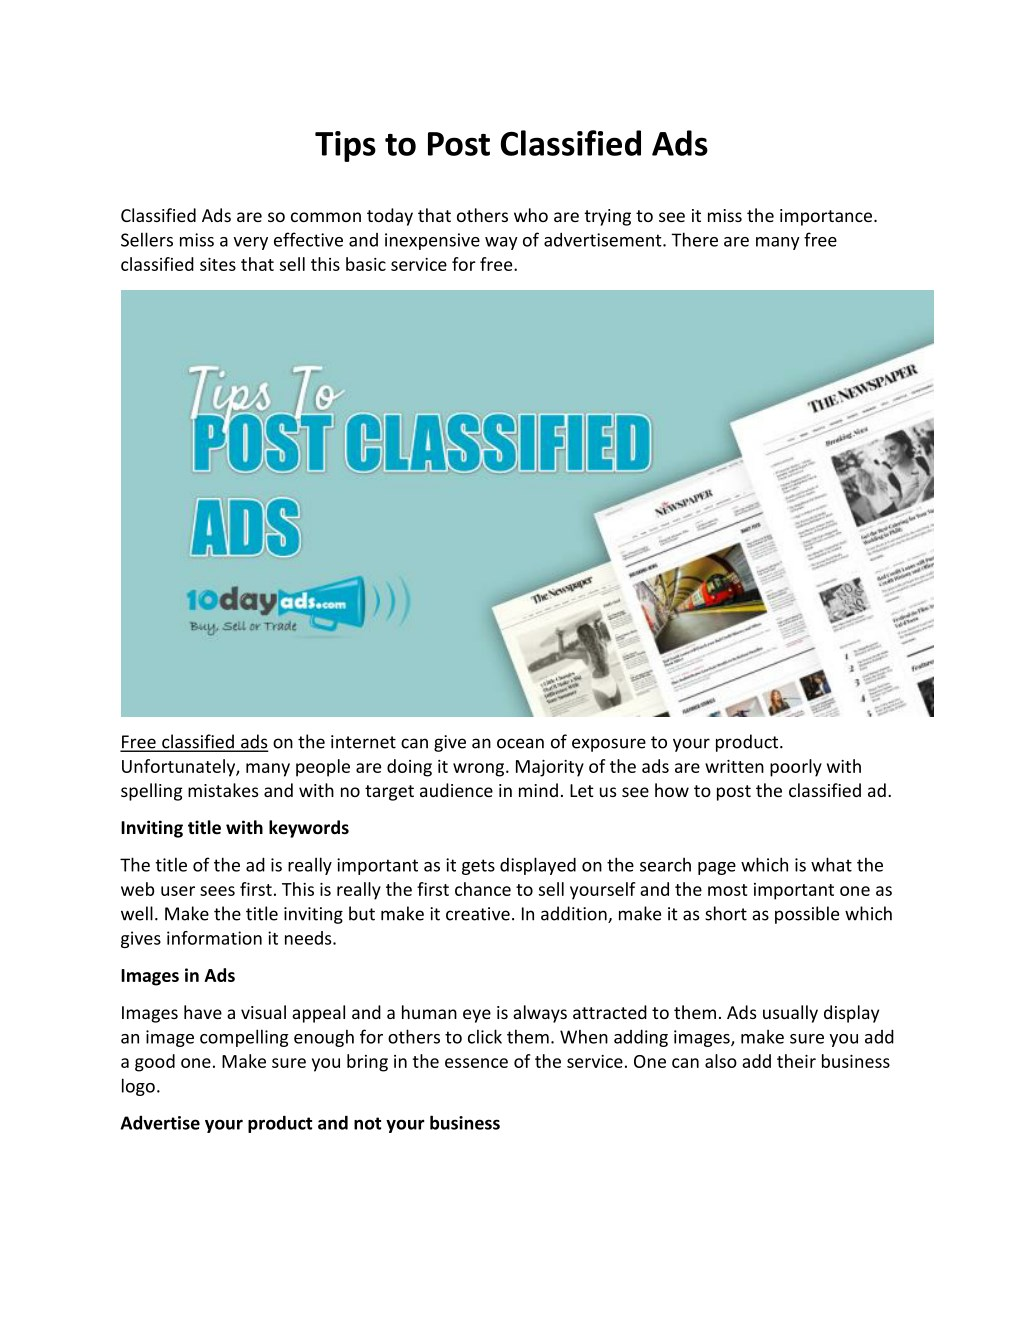 Using Appealing Titles For The Classified Ads | Veduggio Informa